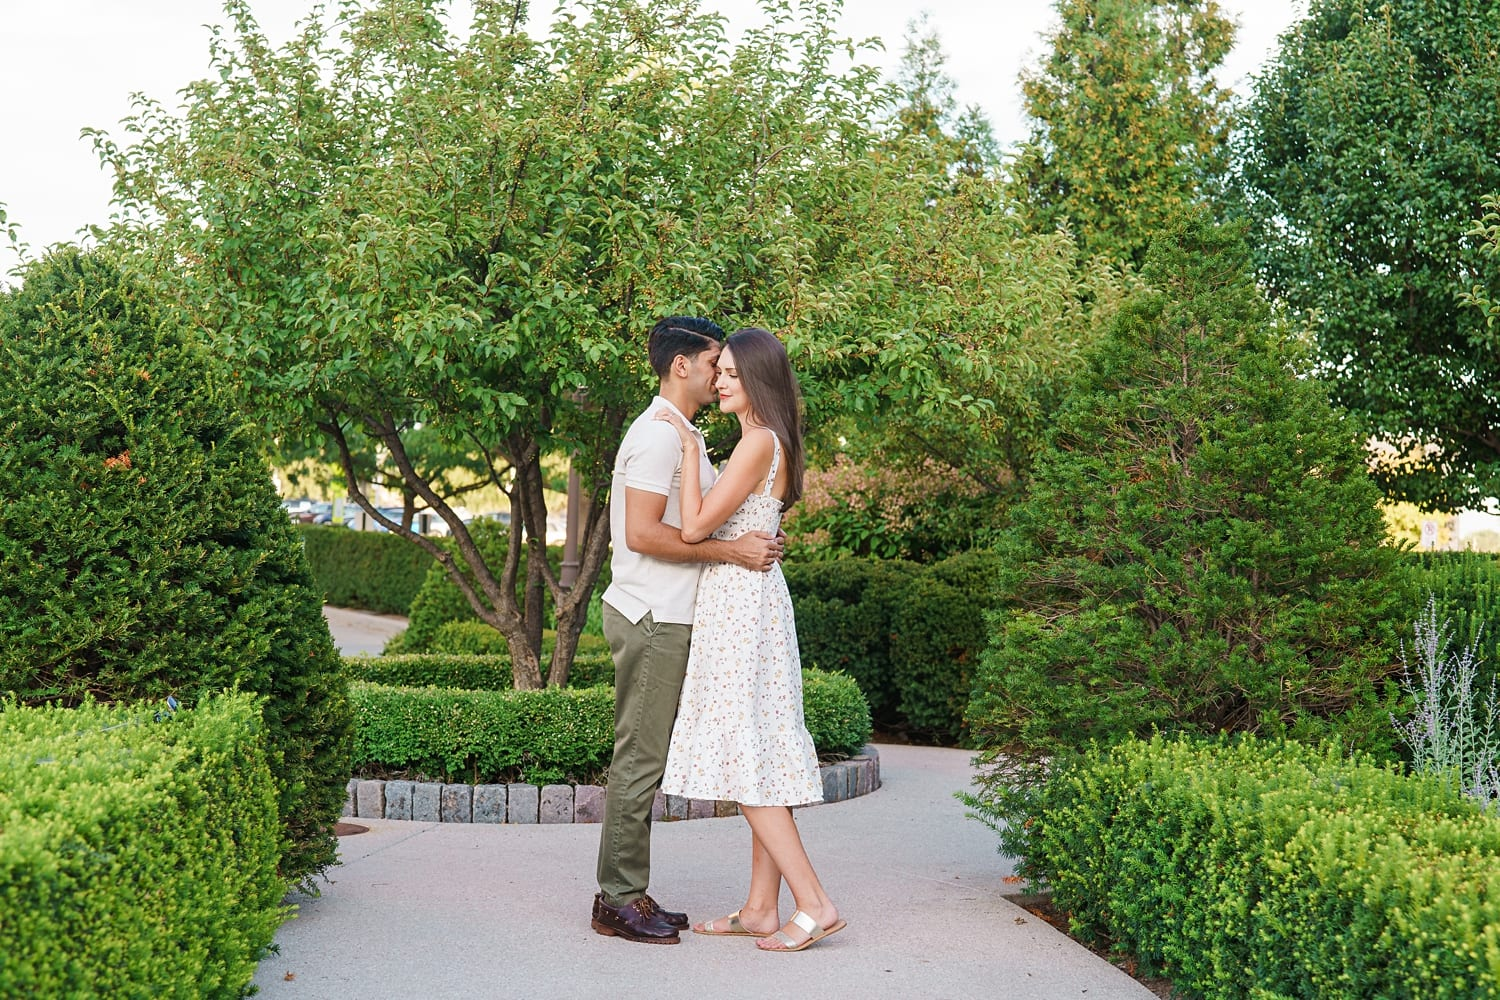 des moines engagement picture locations in a garden